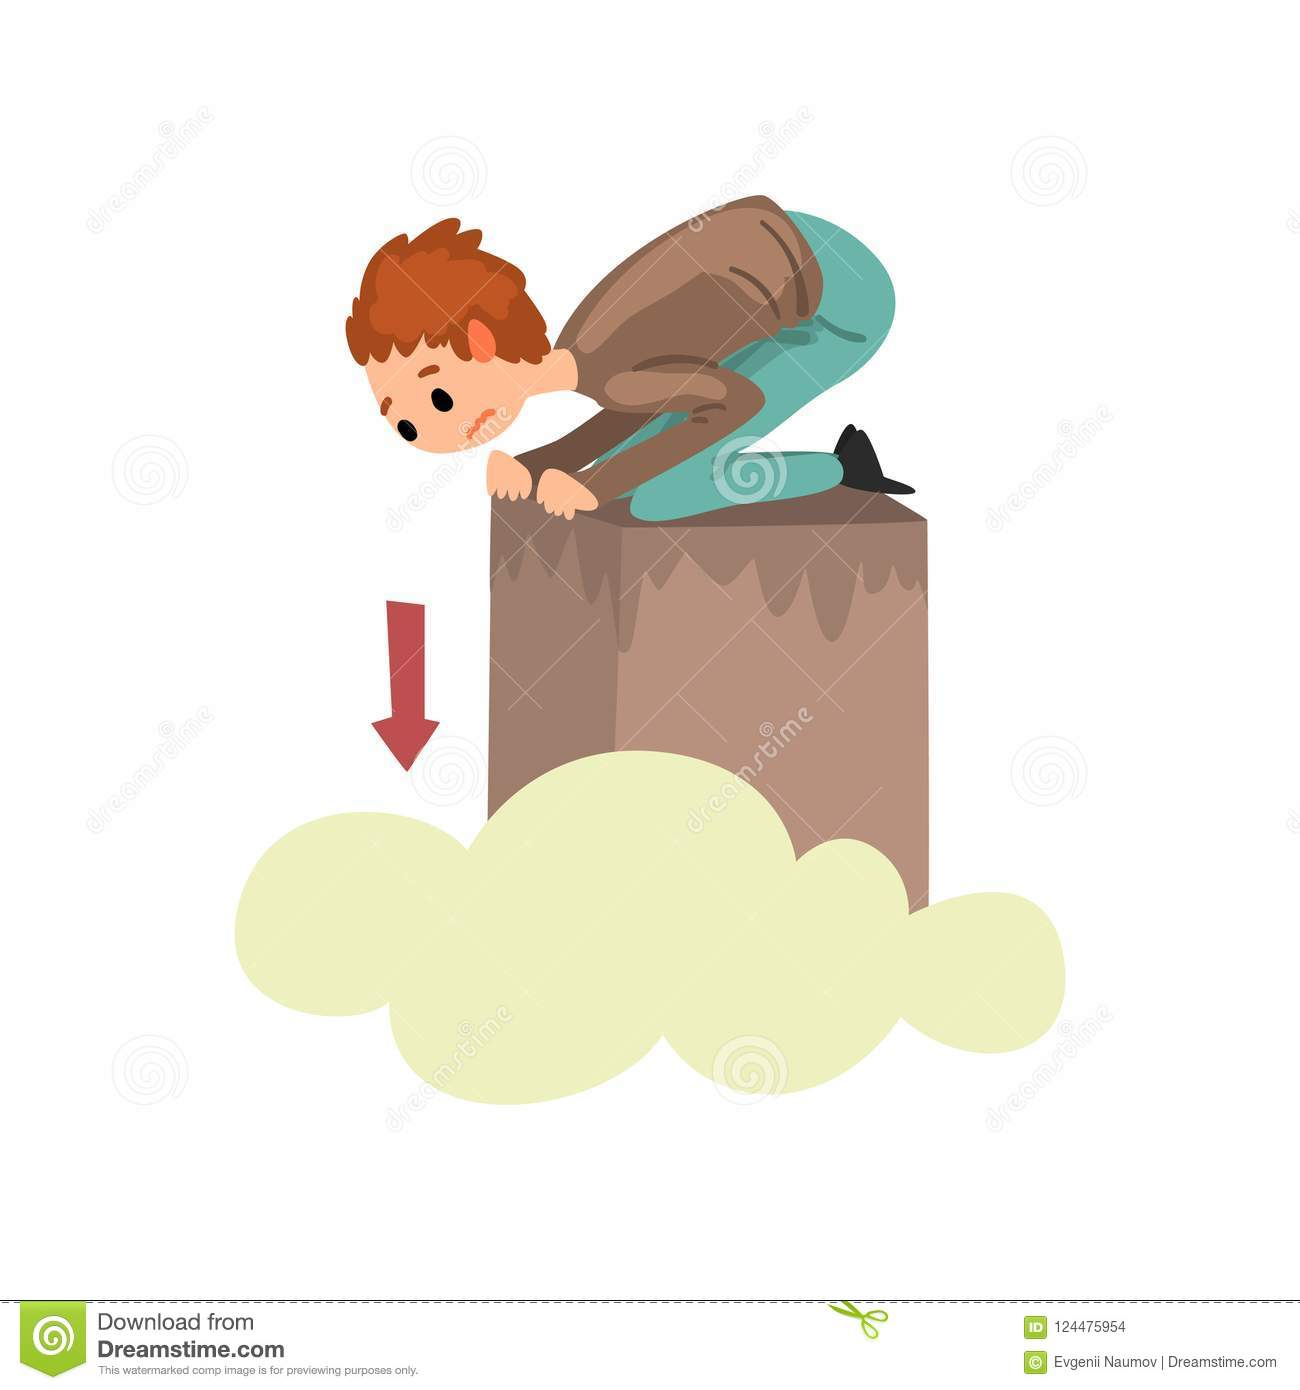 Man suffering from acrophobia, guy feeling fear of heights, human fear concept vector Illustration on a white background